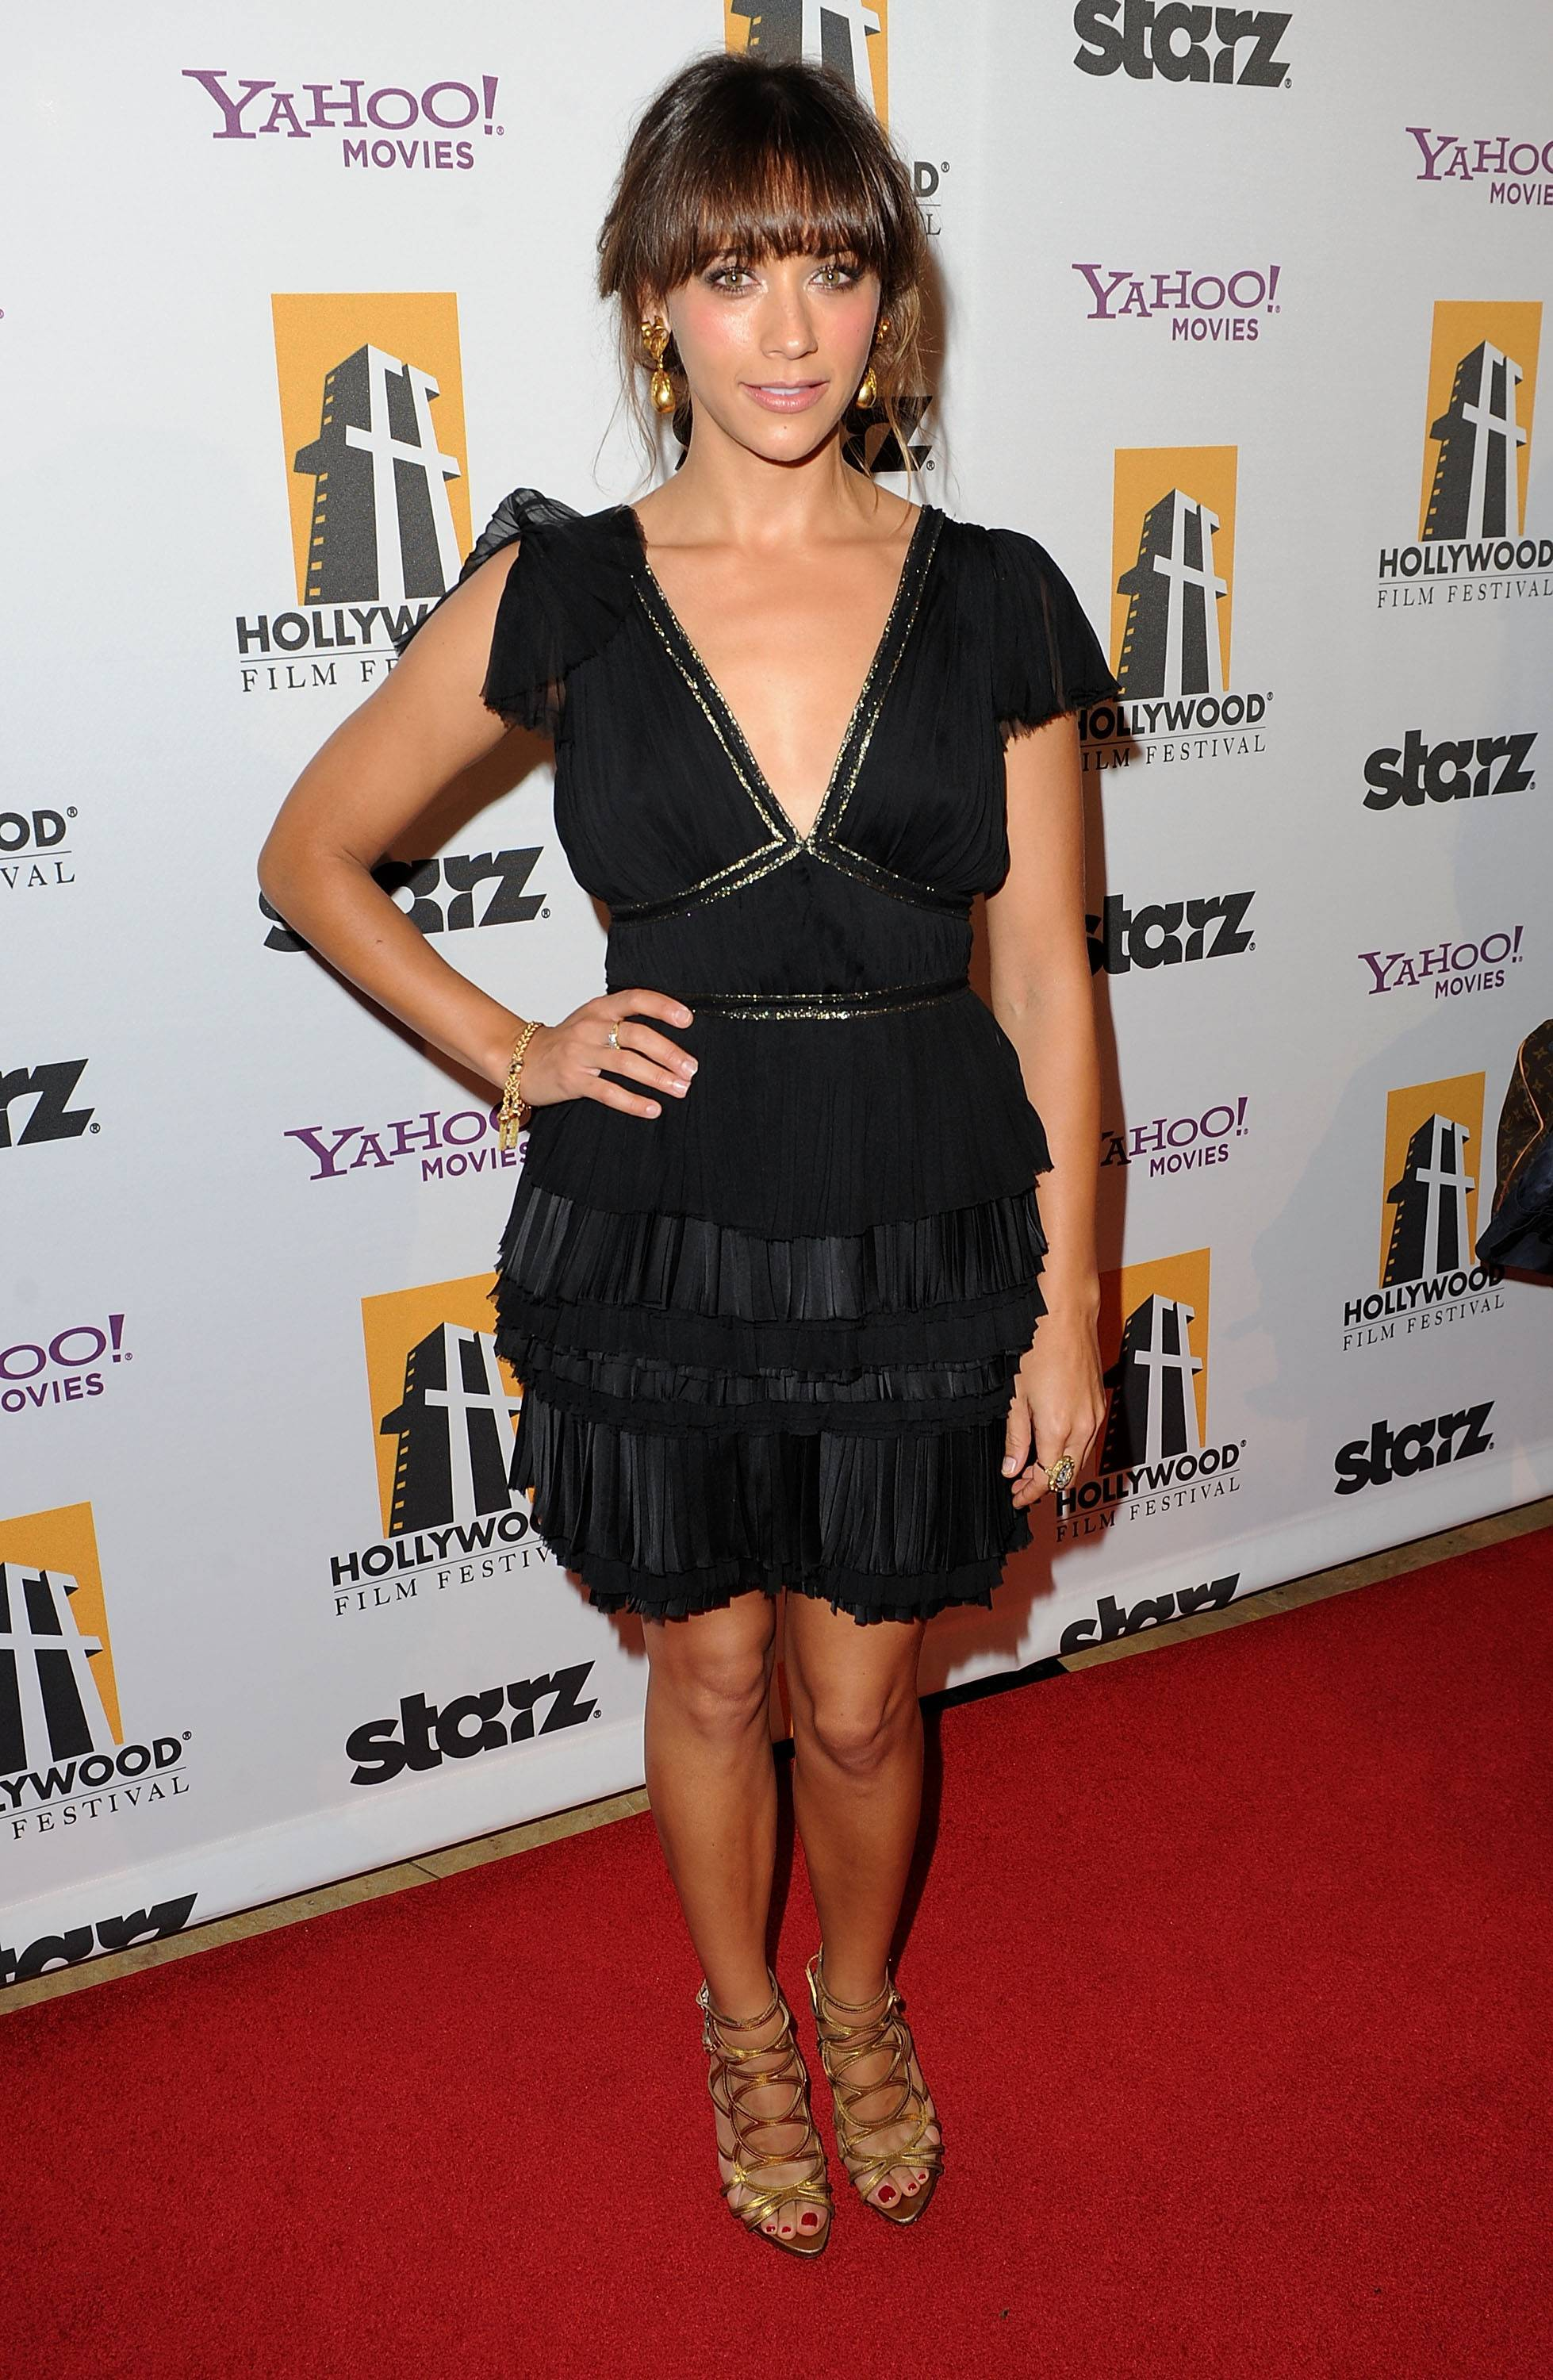 Actress Rashida Jones arrives at the 14th annual Hollywood Awards Gala at The Beverly Hilton Hotel on October 25, 2010 in Beverly Hills, California.